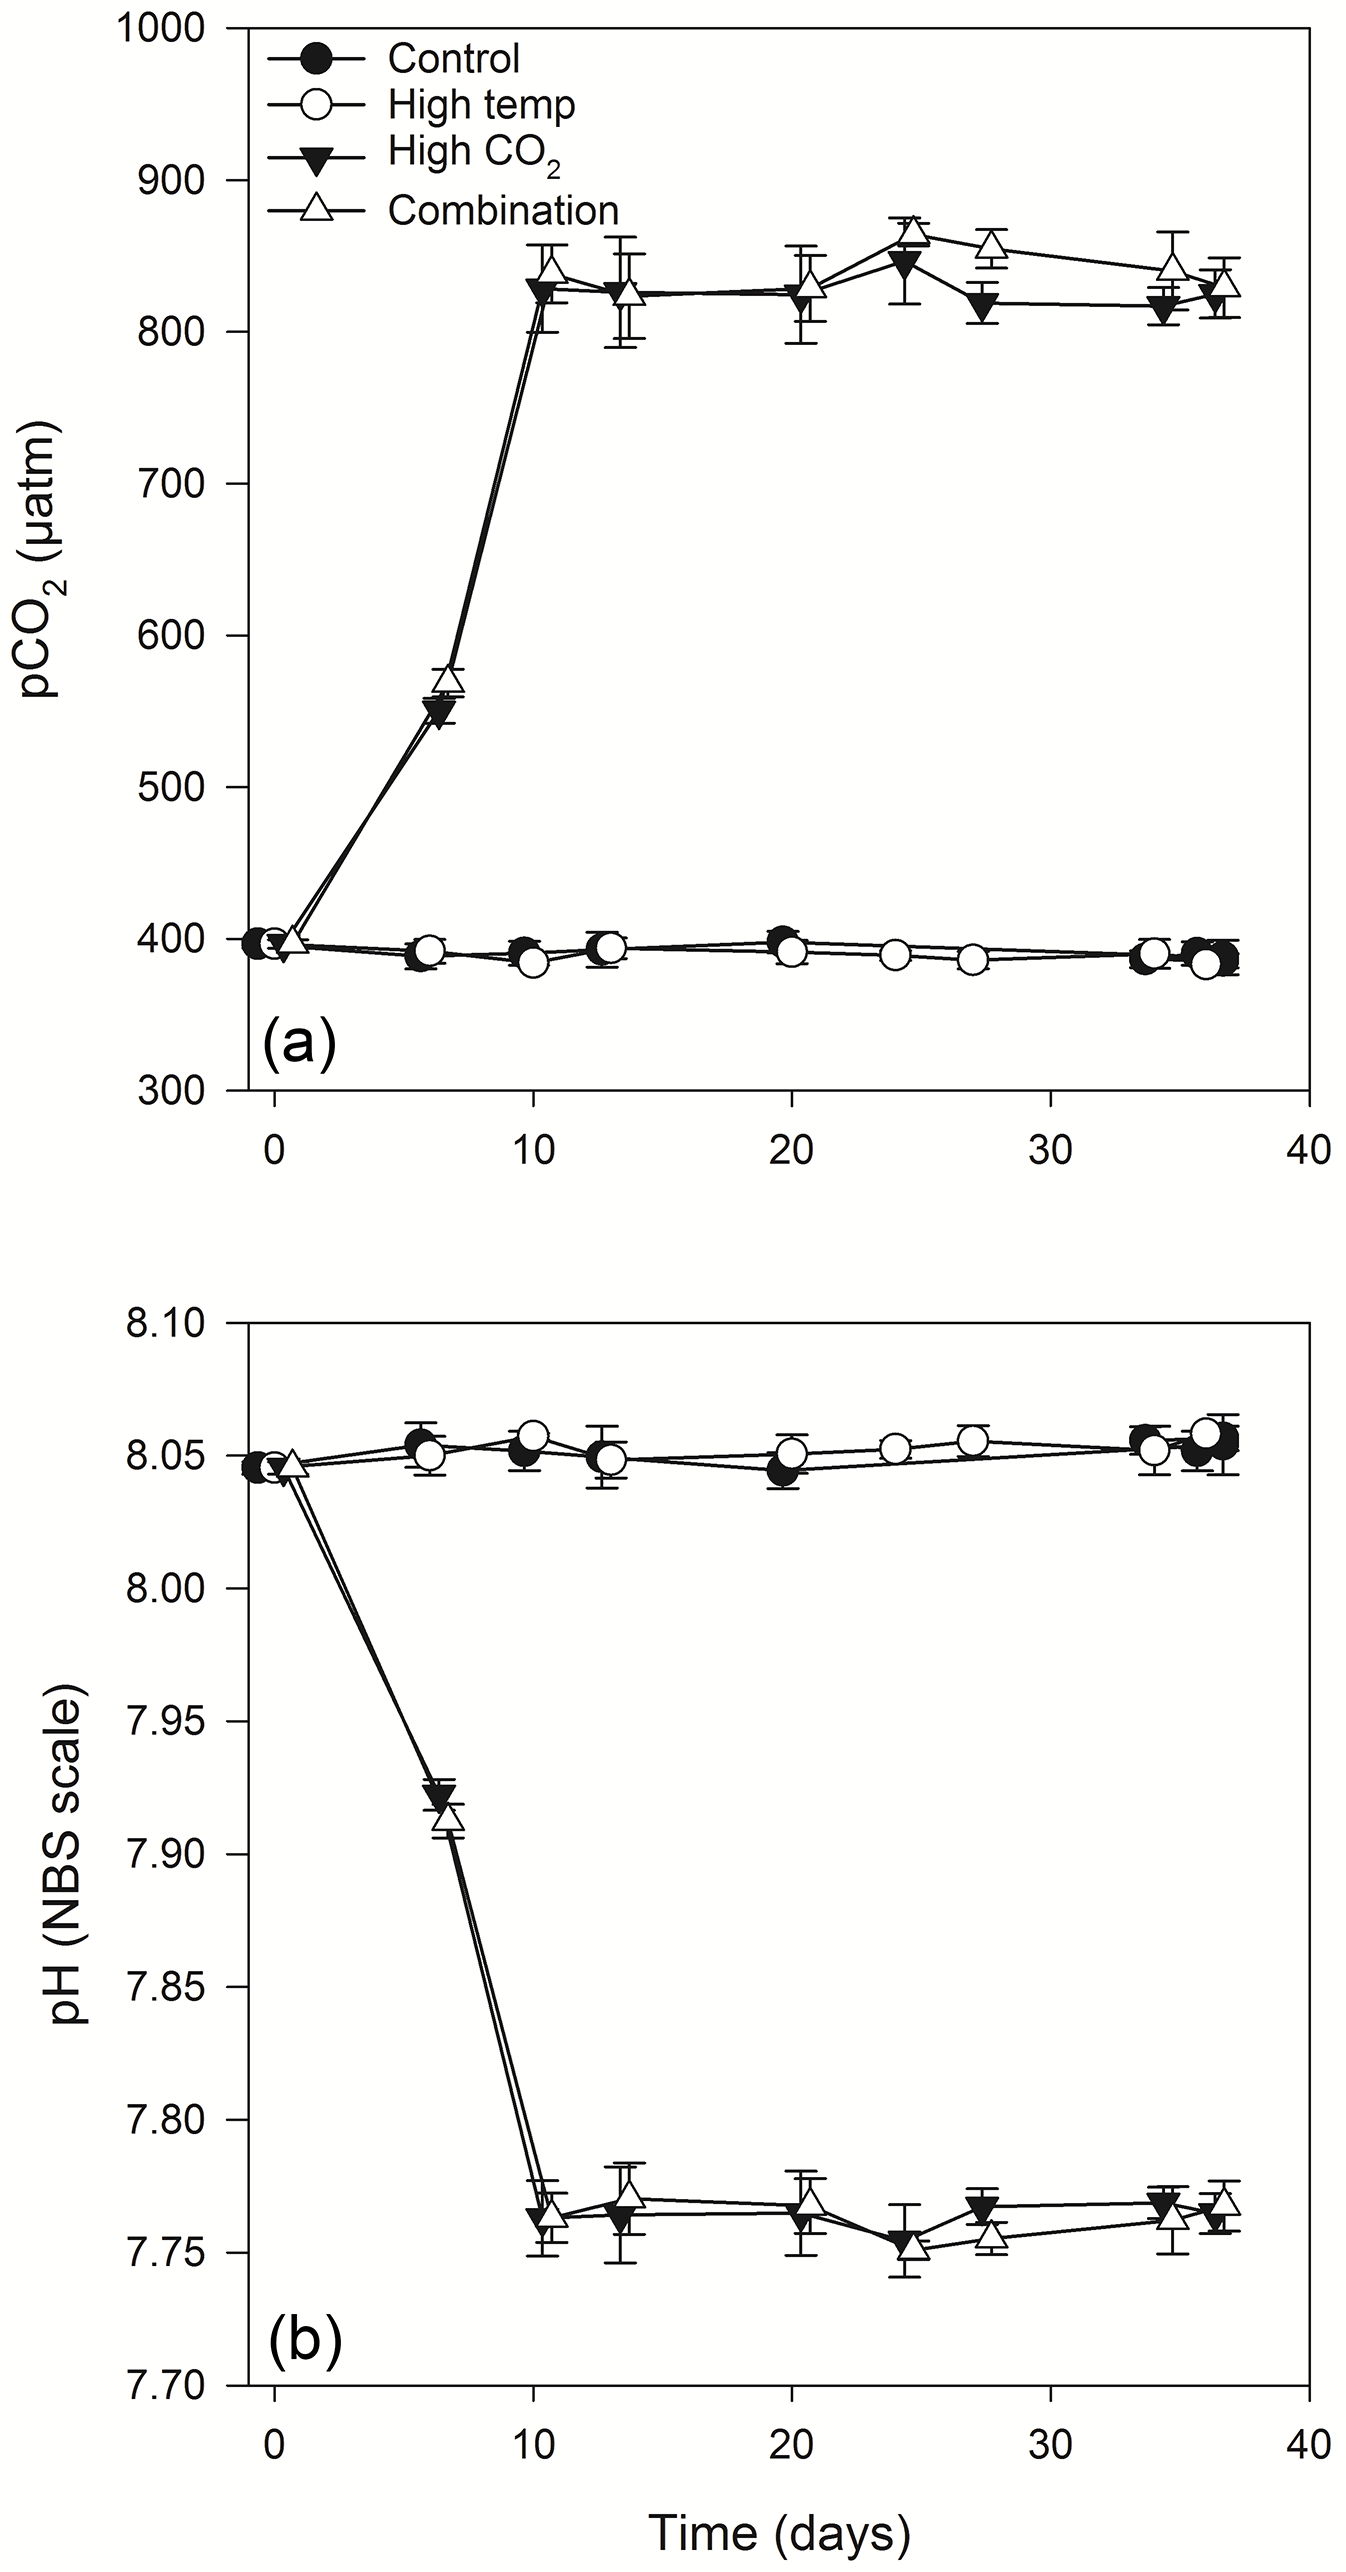 BG - Effects of elevated CO2 and temperature on phytoplankton